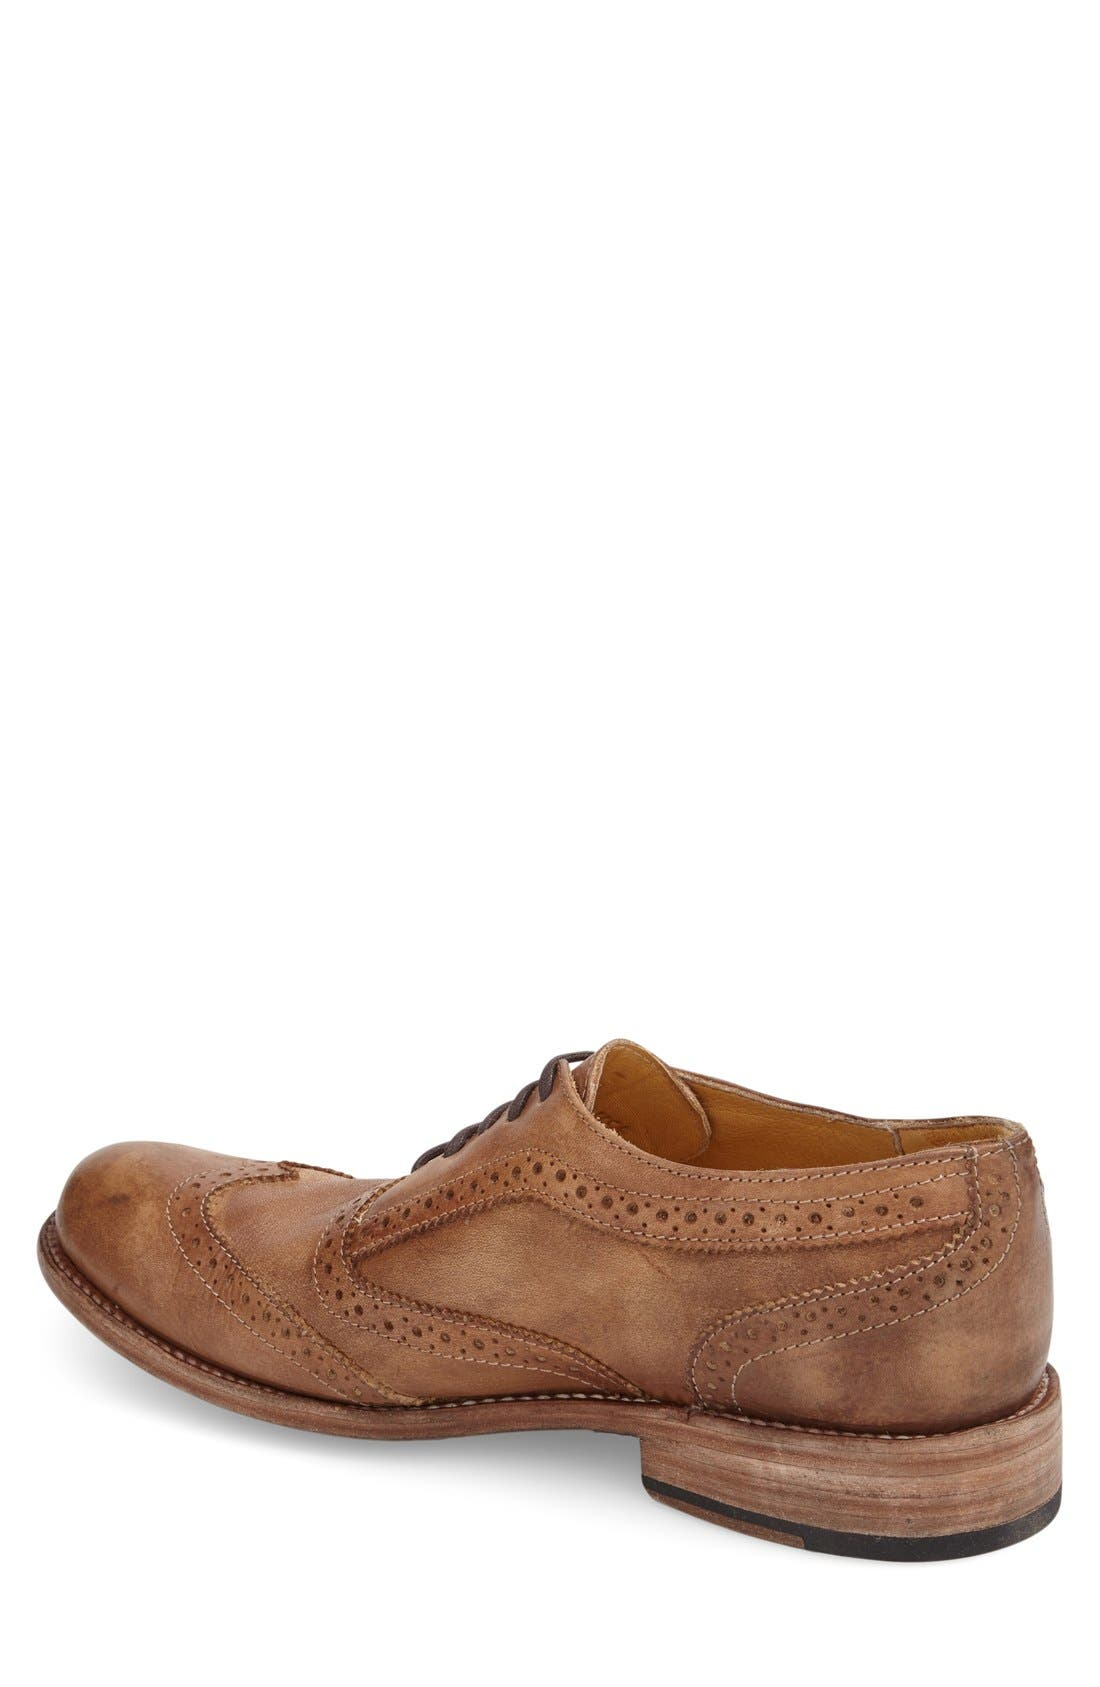 Alternate Image 4  - Bed Stu 'Corsico' Wingtip Oxford (Men)